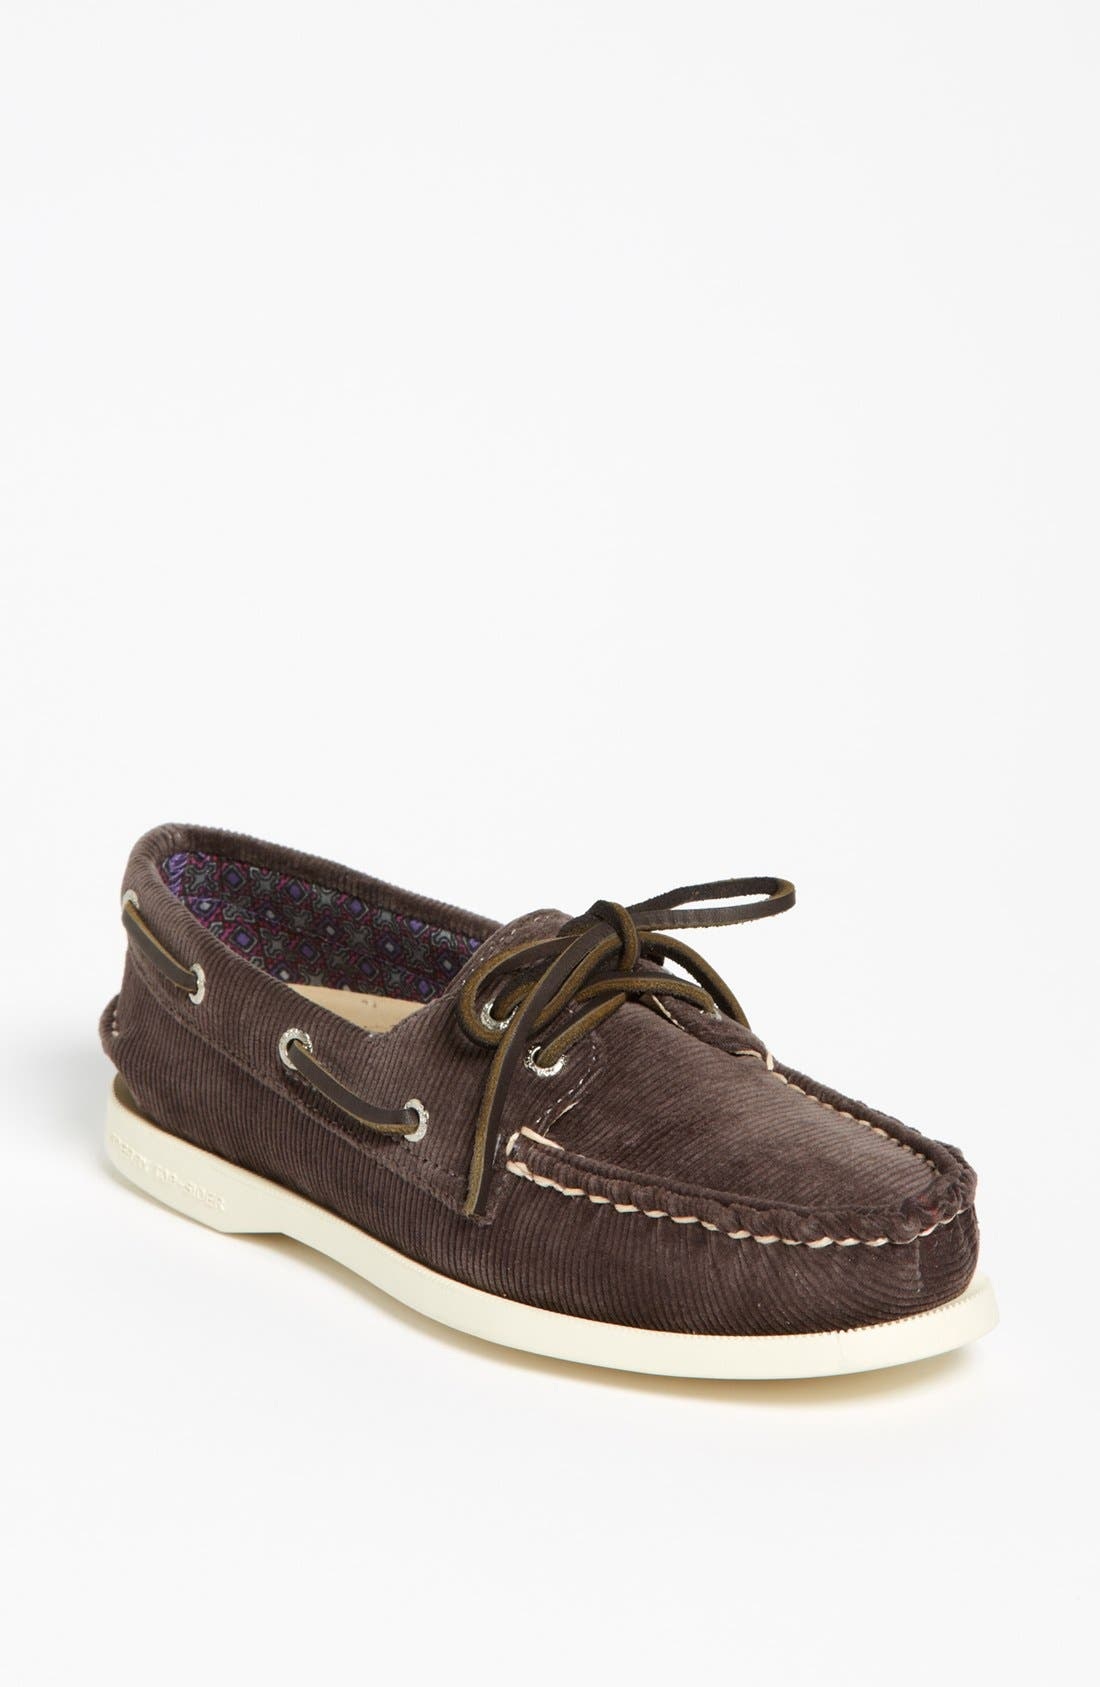 Alternate Image 1 Selected - Sperry Top-Sider® 'Authentic' Boat Shoe (Women)